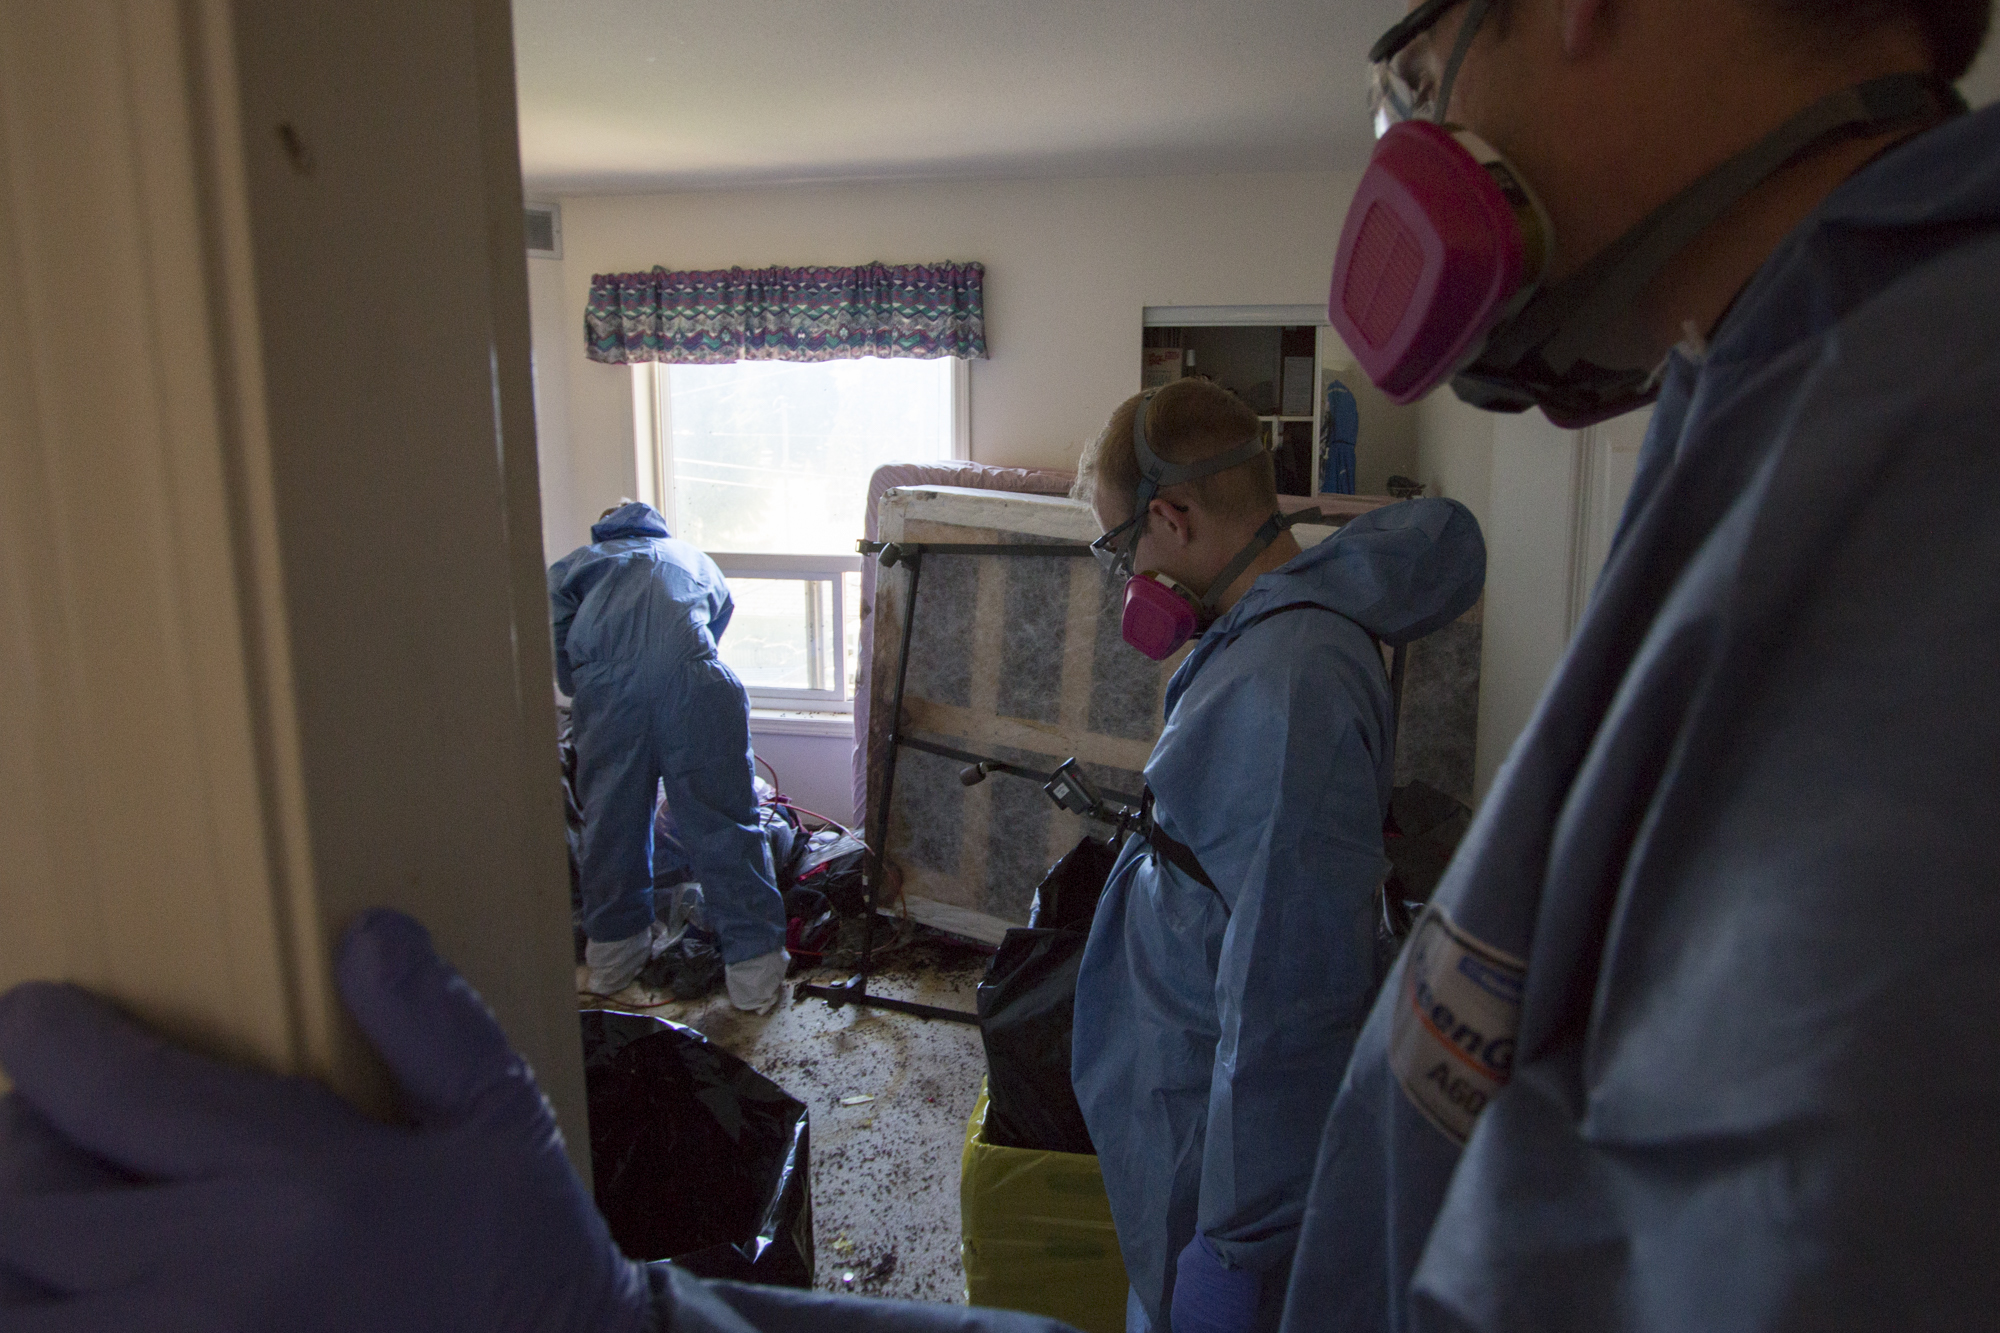 Kreklau and his co-workers look into the bedroom where the deceased was found. Most of the furniture will need to be taken apart and disposed of. (Tina Lovgreen/CBC)